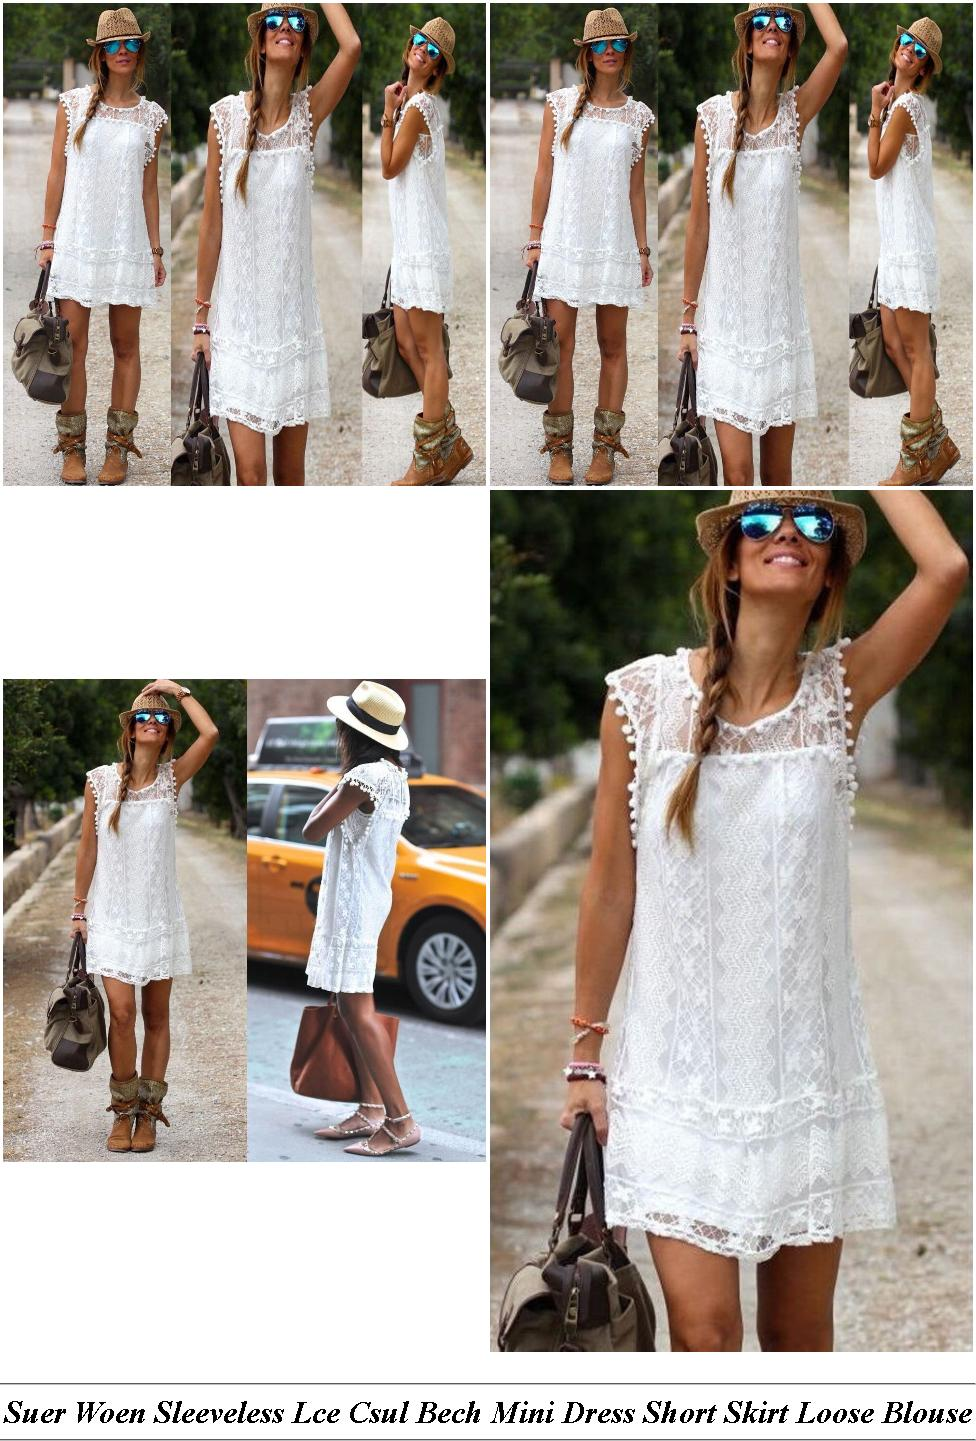 Uy Dress Online Uae - Cheap Womens Outique Clothing Online - Girls Party Dresses